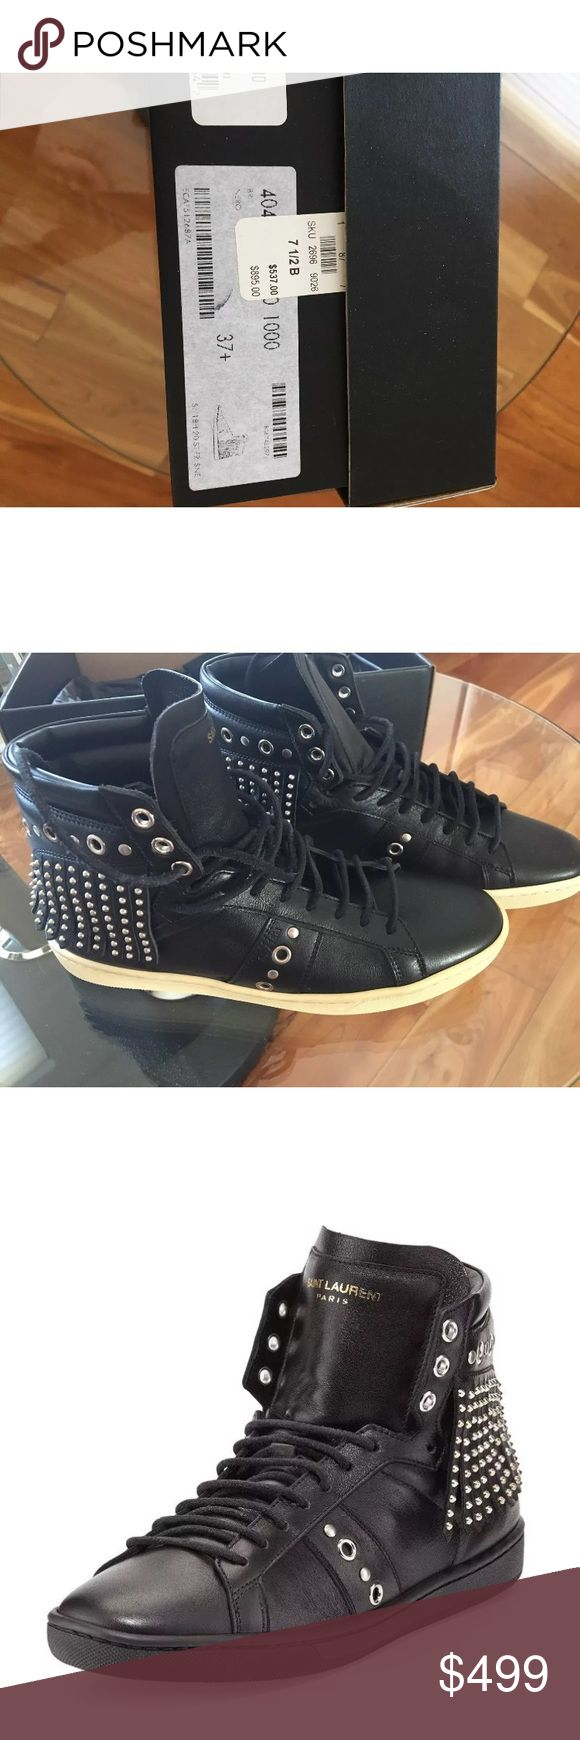 NIB Saint Laurent Studded-fringe sneakers, sz 37.5 BRAND NEW WITH BOX 100% AUTHENTIC Saint LaurentStudded-Fringe Leather High-Top Sneaker, Black, retail for $895 Saint Laurent calfskin sneaker with studded-fringe trim. Flat sole. Round toe. Lace-up front. Logo patch at tongue. Cushioned topline. Rubber outsole. Made in Italy. Please, know your size.... Final sale!!!!! Please, ask all your questions, before you buy. Saint Laurent Shoes Sneakers